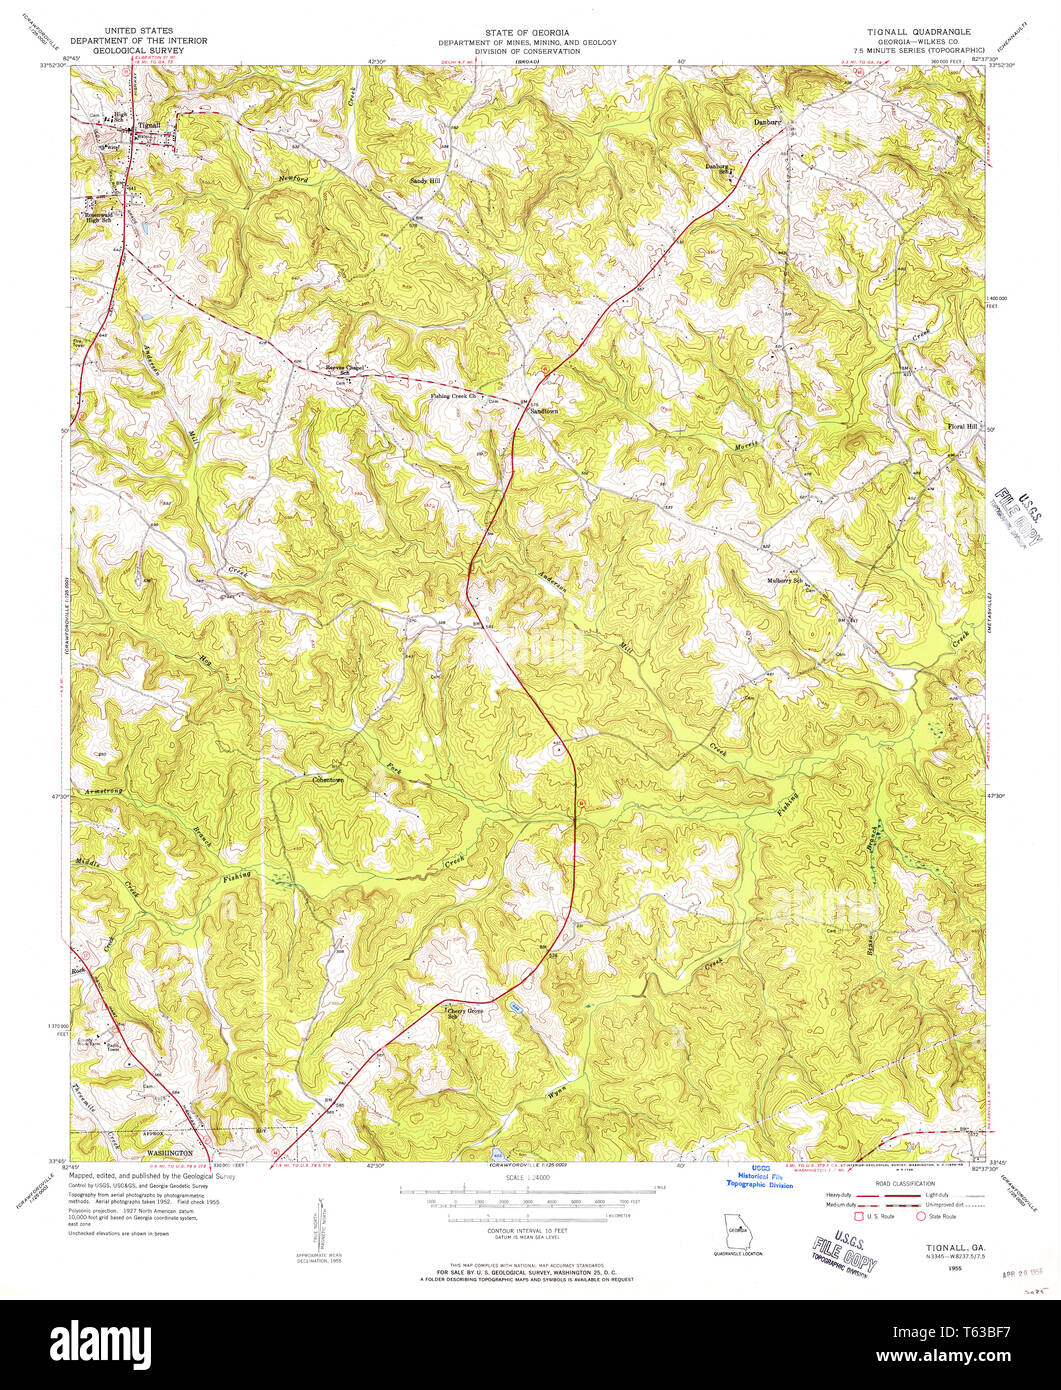 Geologic Map Of Georgia.Usgs Topo Map Georgia Ga Tignall 247148 1955 24000 Restoration Stock